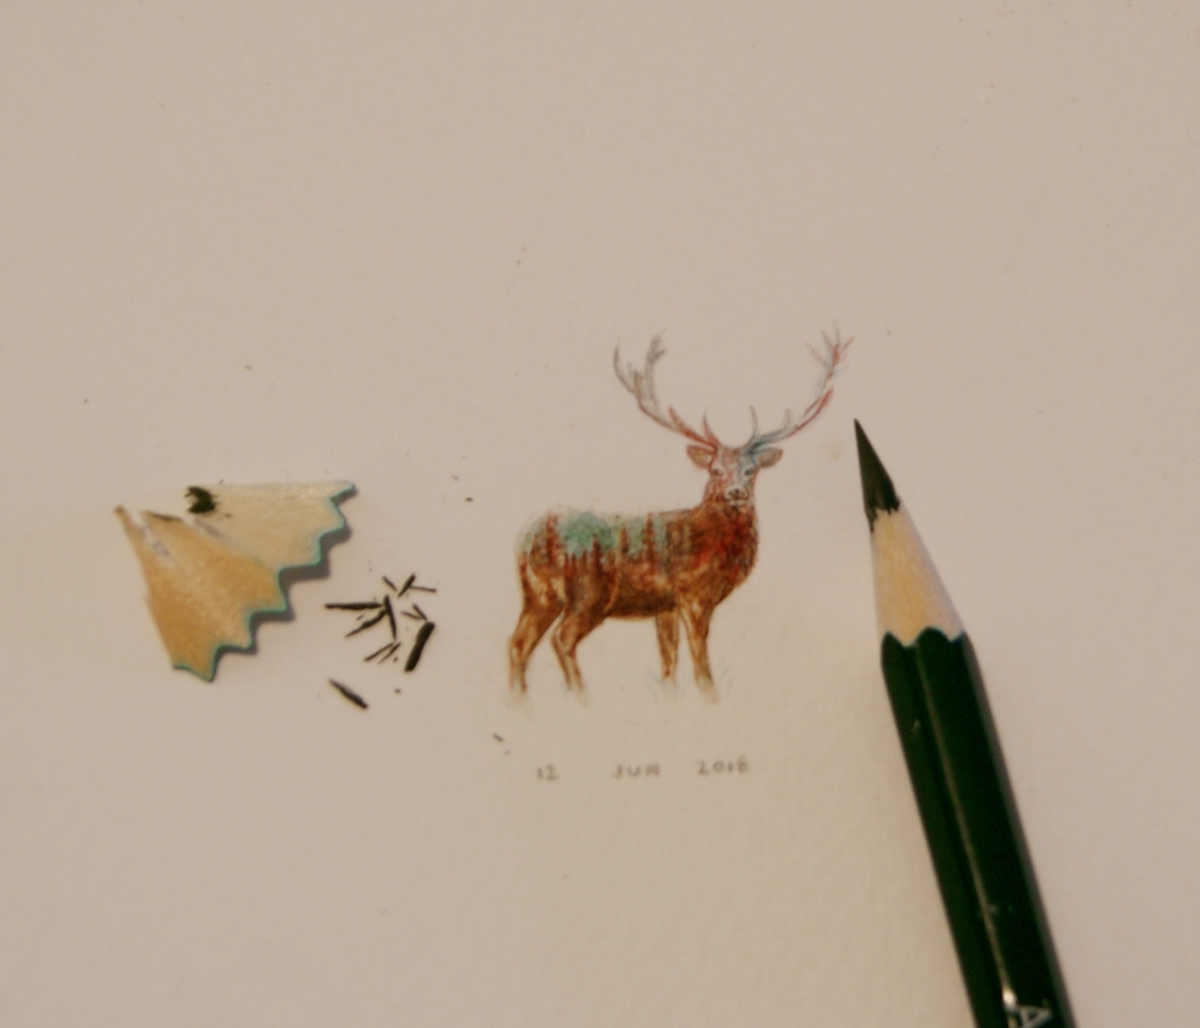 16-Mini-Deer-Kiekari-Guillermo-Méndez-Mr-Luigi-Miniature-Drawings-and-Watercolor-Paintings-www-designstack-co